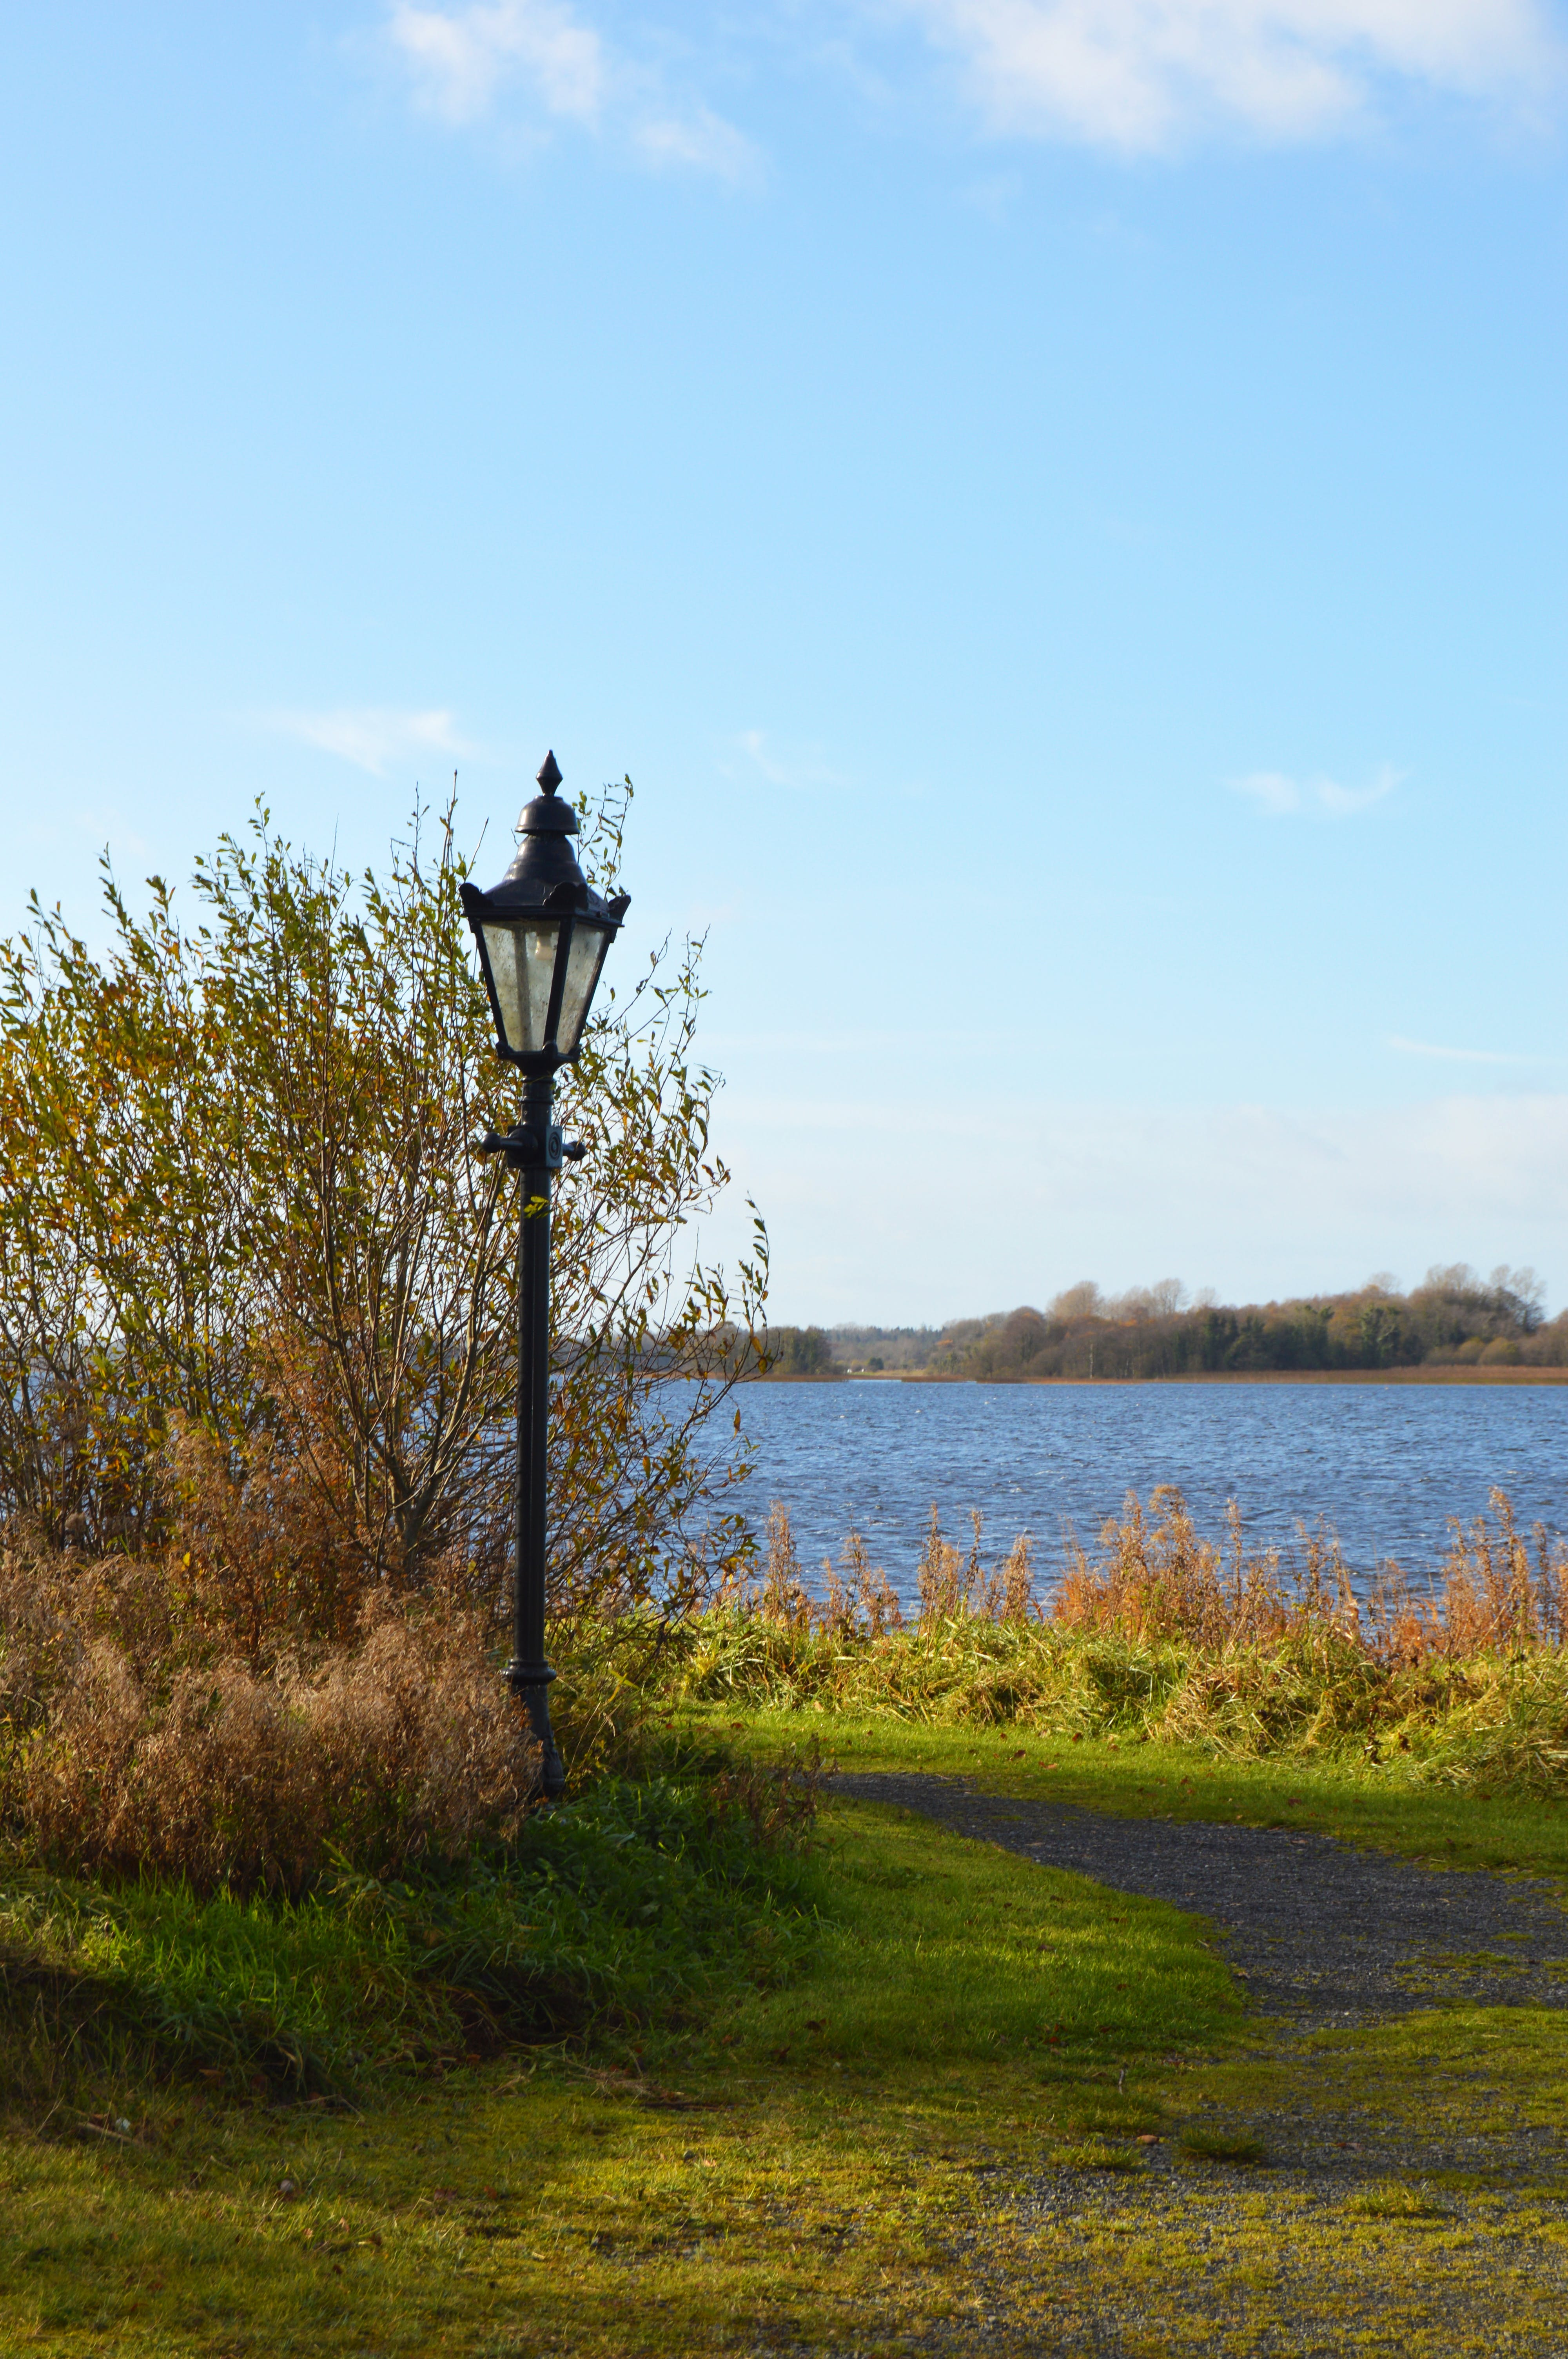 Free stock photo of lake, lampost, nature, sky